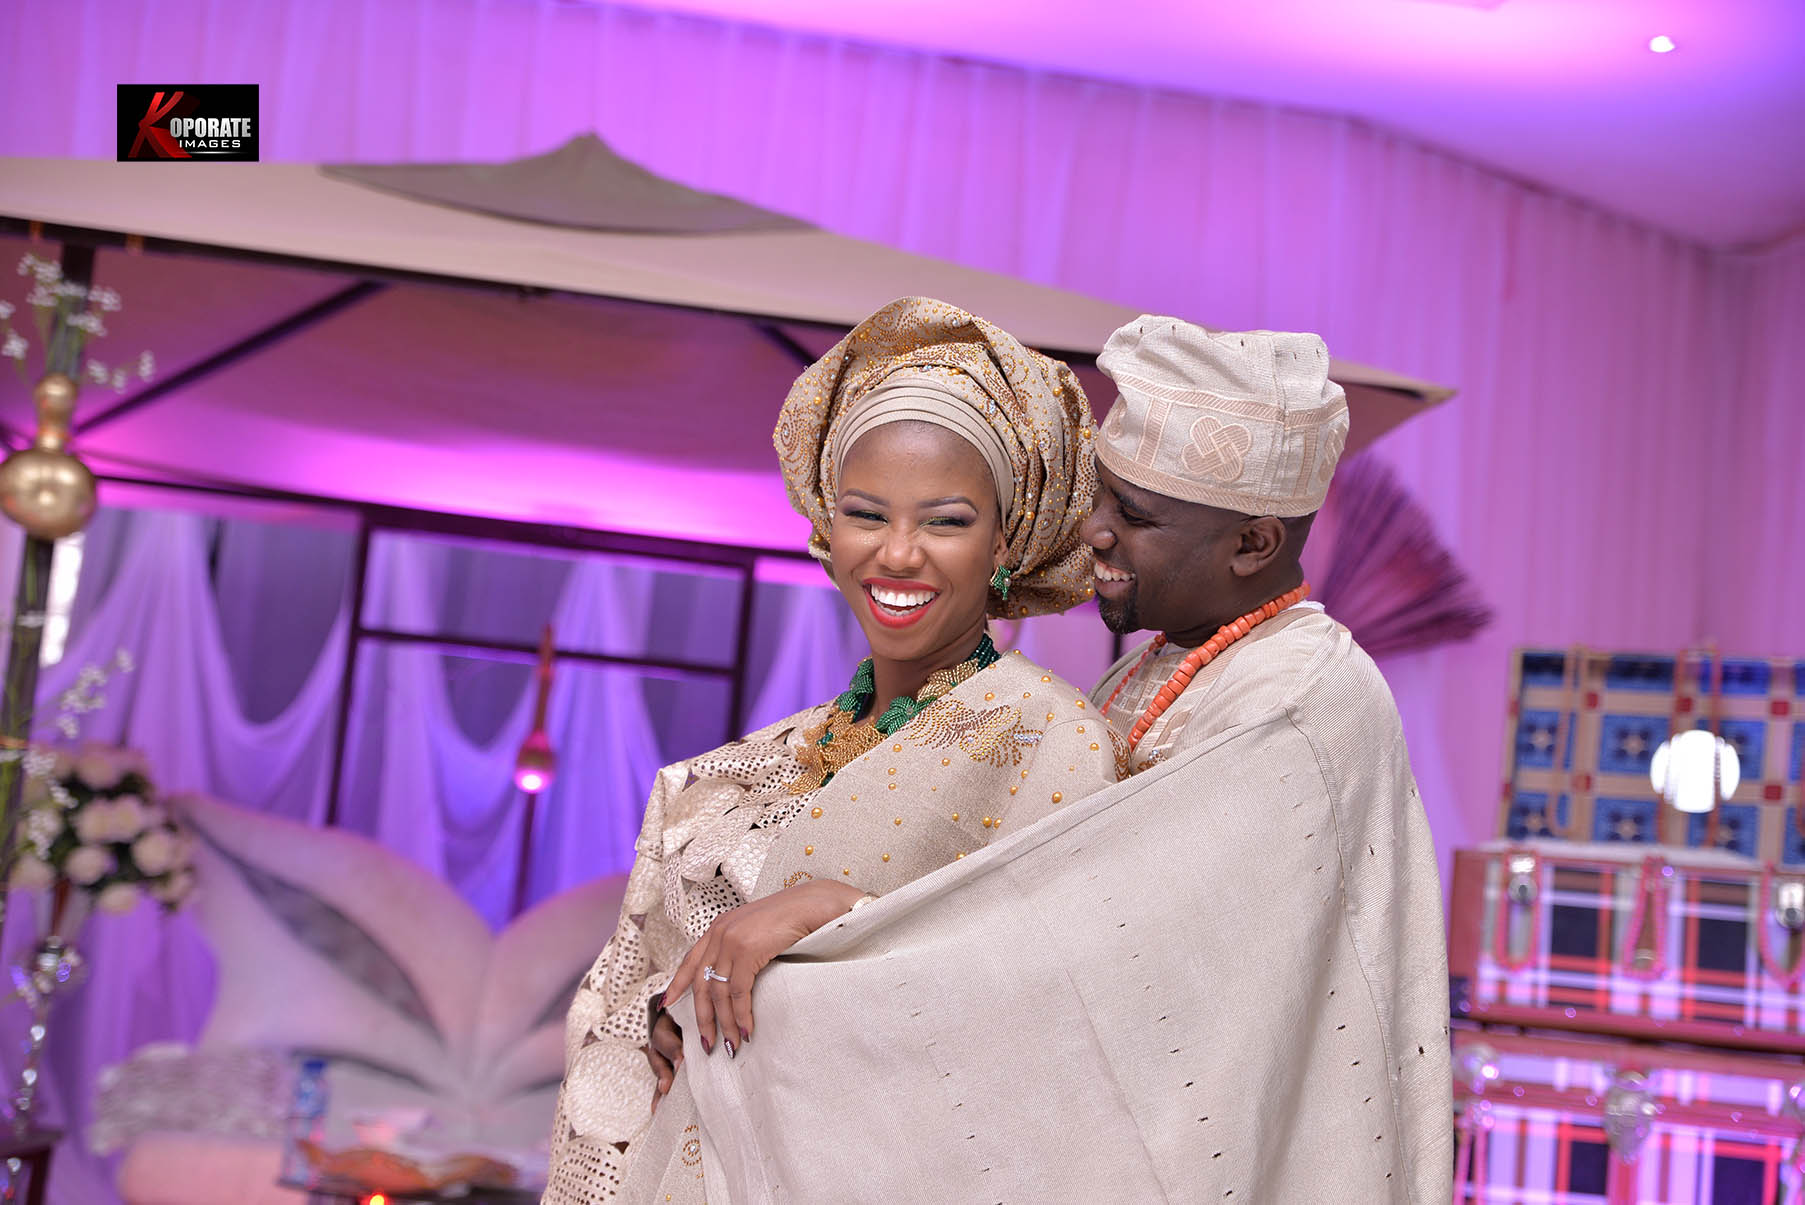 OFURE AND EHI-BENIN TRADITIONAL MARRIAGE wedding photos|Koporate Images|Photography & Video Coverage studio in Benin City|Professional Photographers for your events|Nigerian Wedding Photographer in Benin City|Edo Brides, benin brides